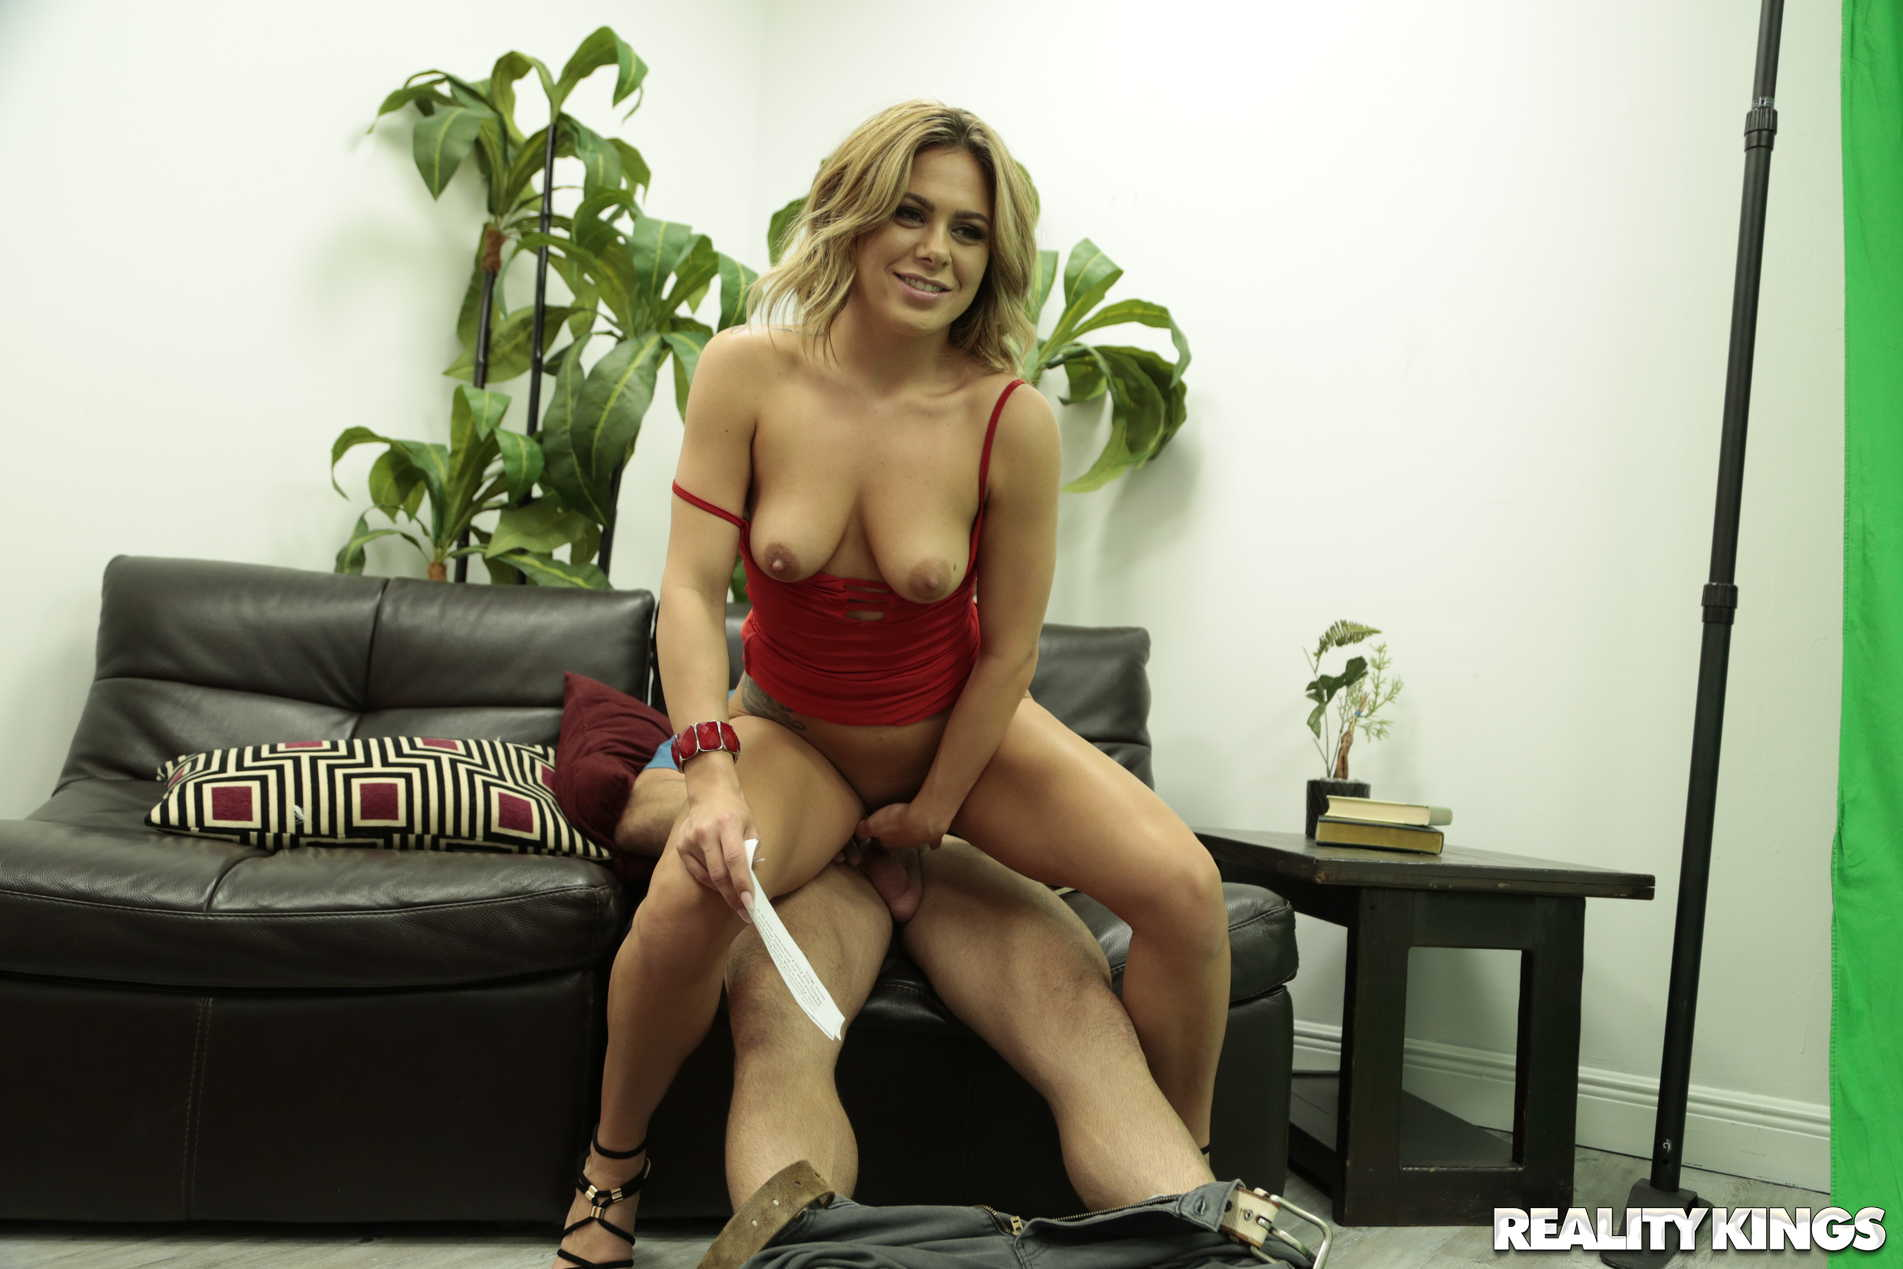 Reality Kings 'Focus Or Fuck' starring Mia Pearl (Photo 130)